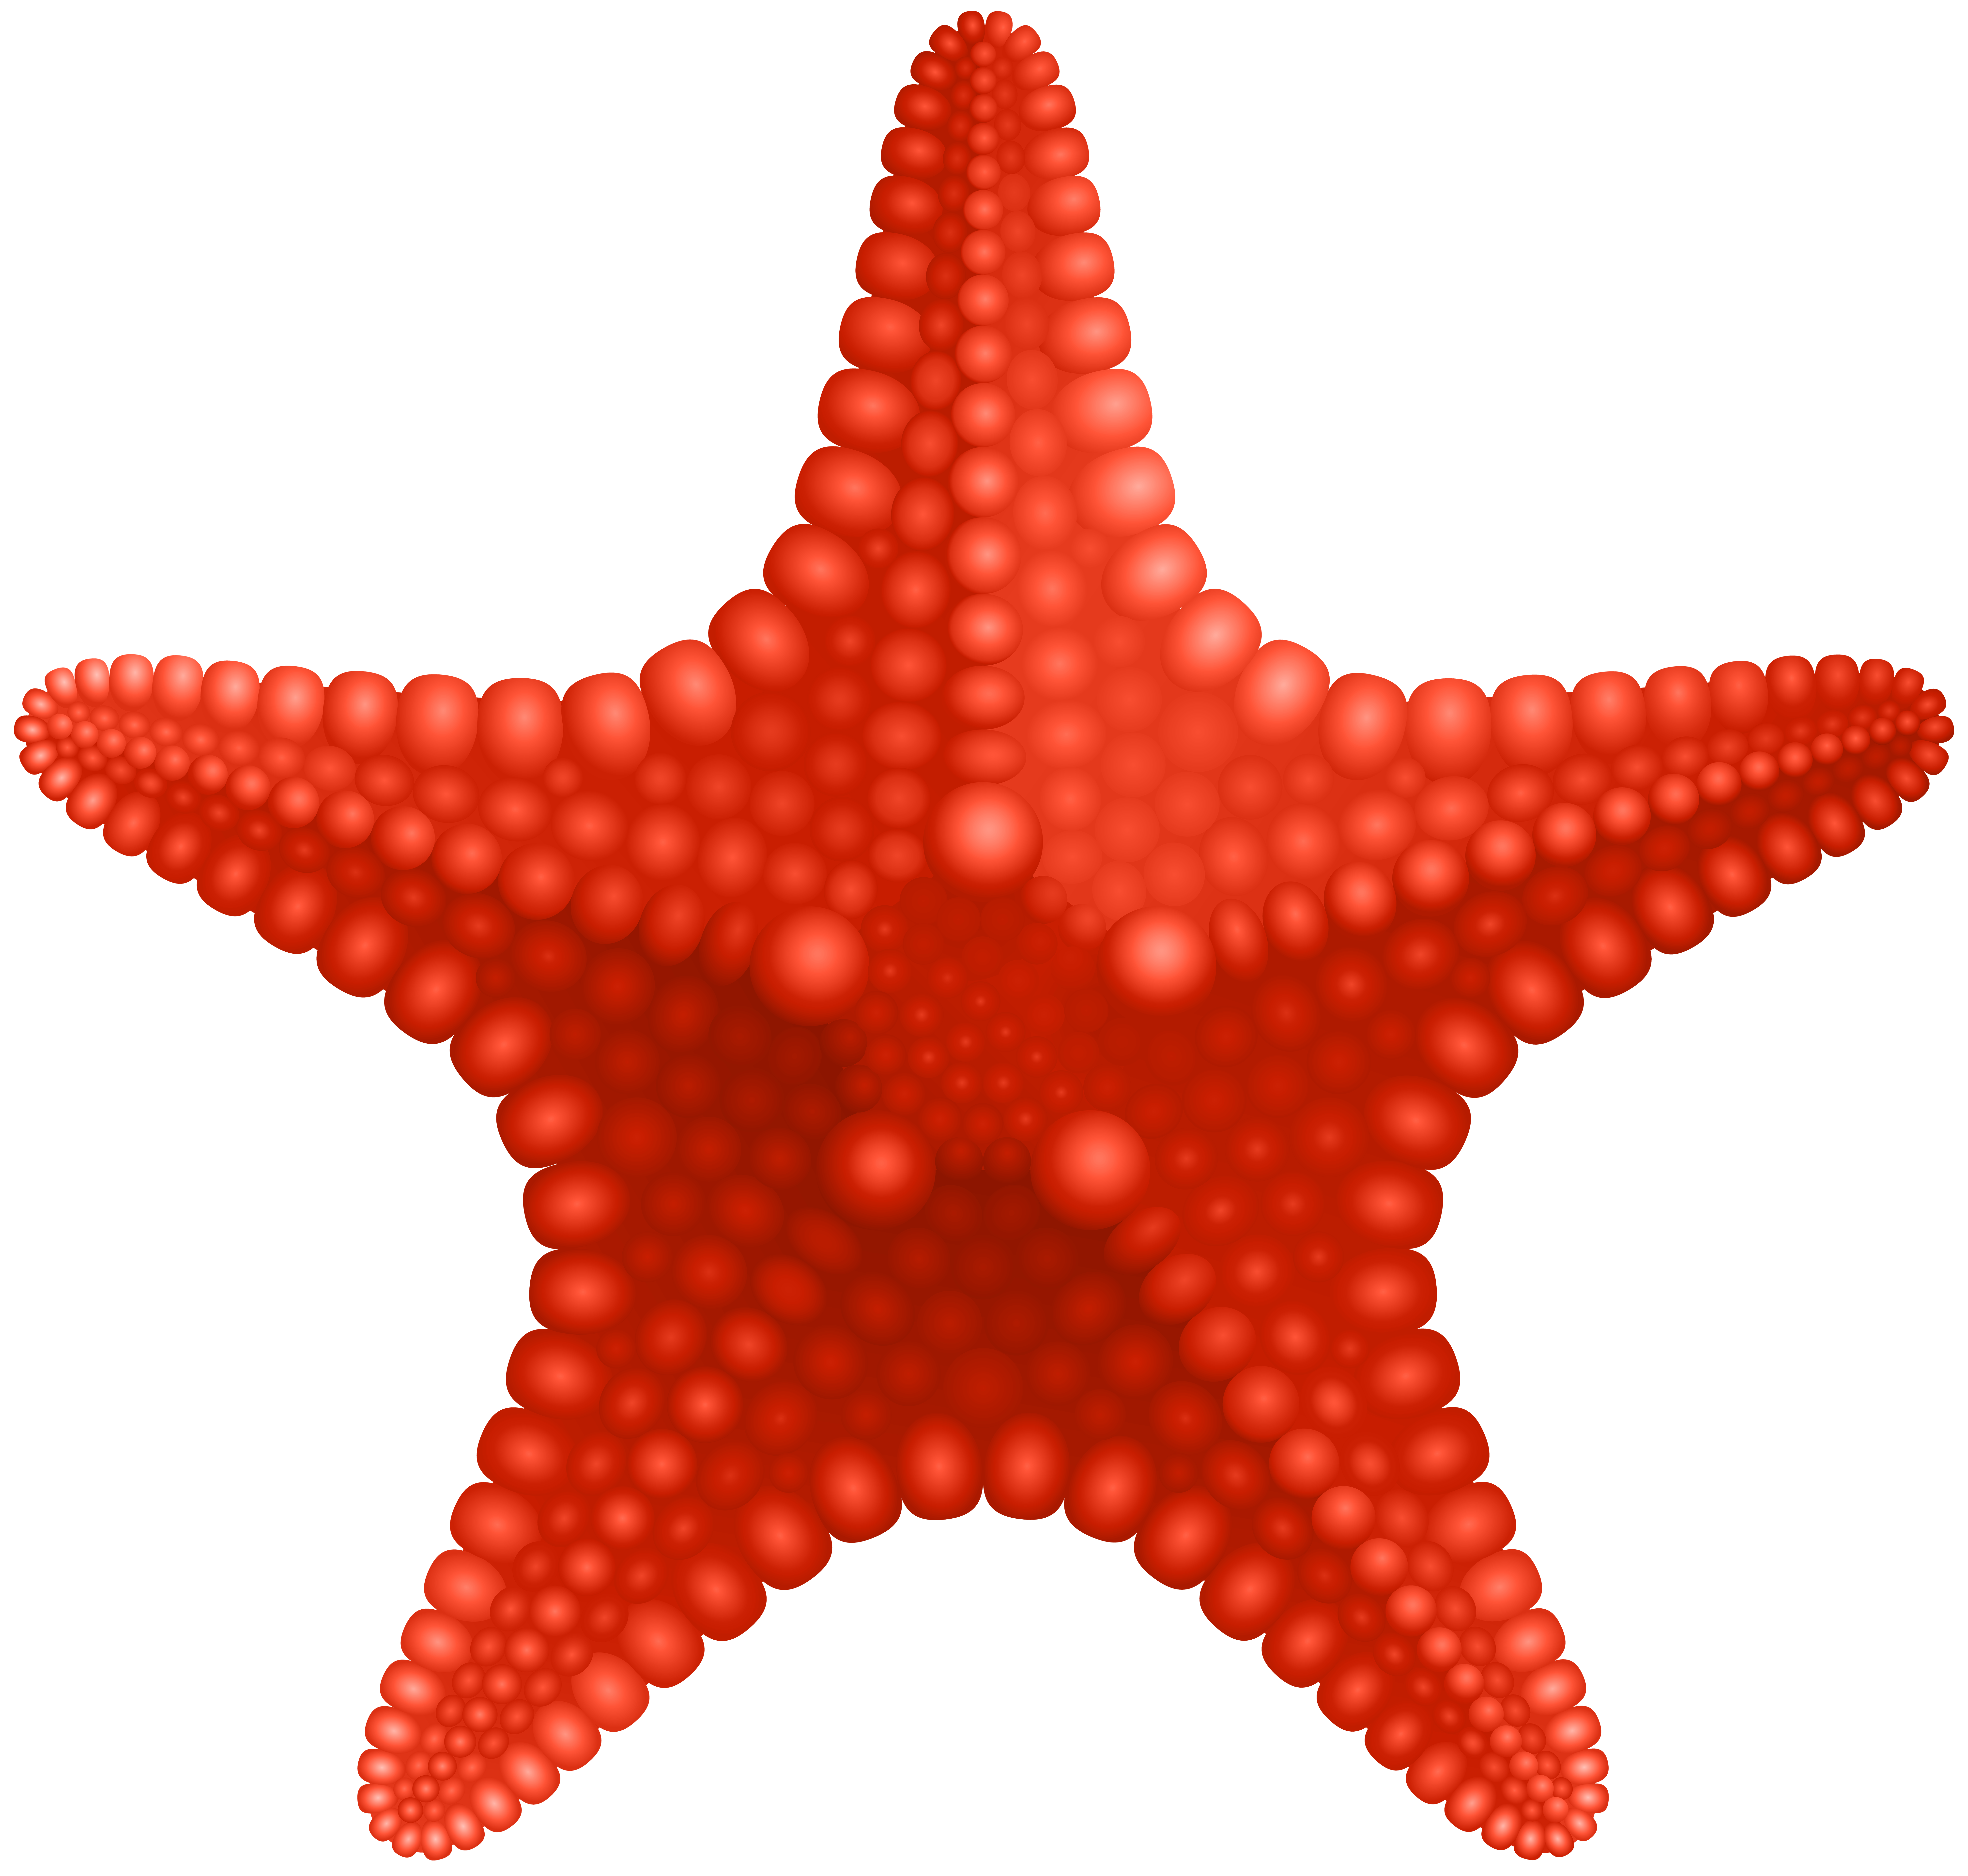 Star fish clipart svg royalty free library Starfish PNG Clip Art Image | Gallery Yopriceville - High-Quality ... svg royalty free library